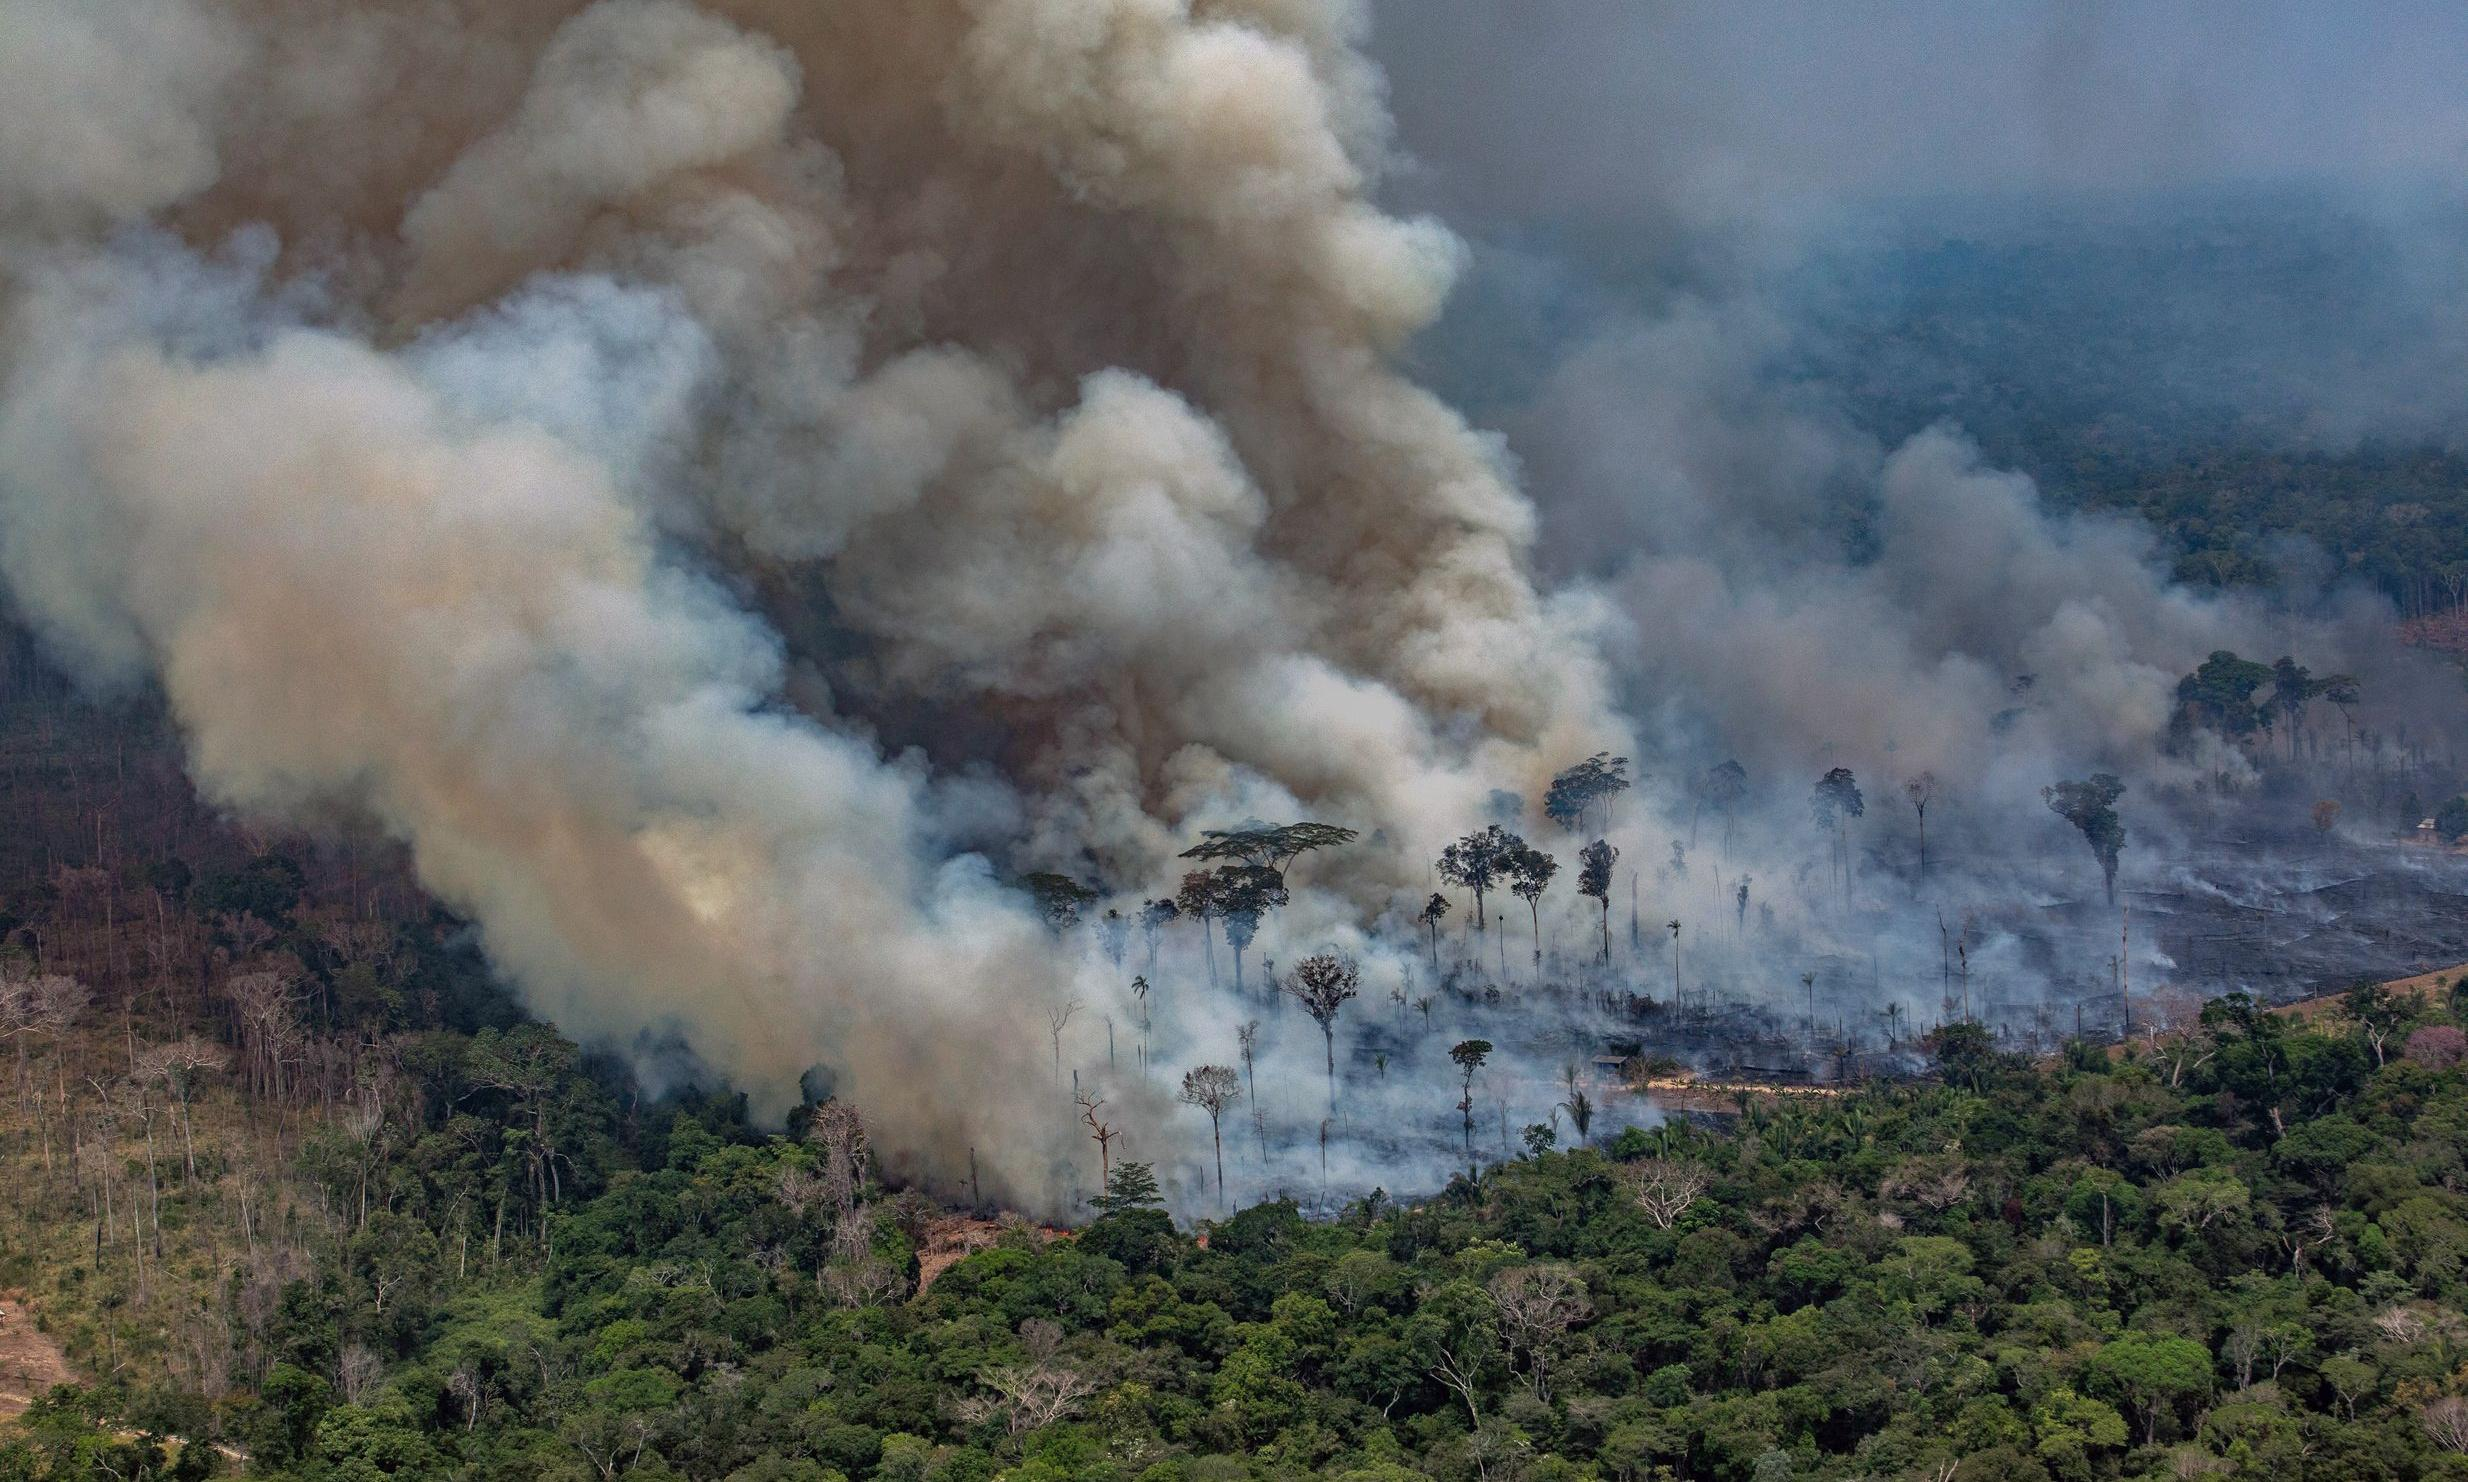 Fires are devouring the Amazon. And Jair Bolsonaro is to blame